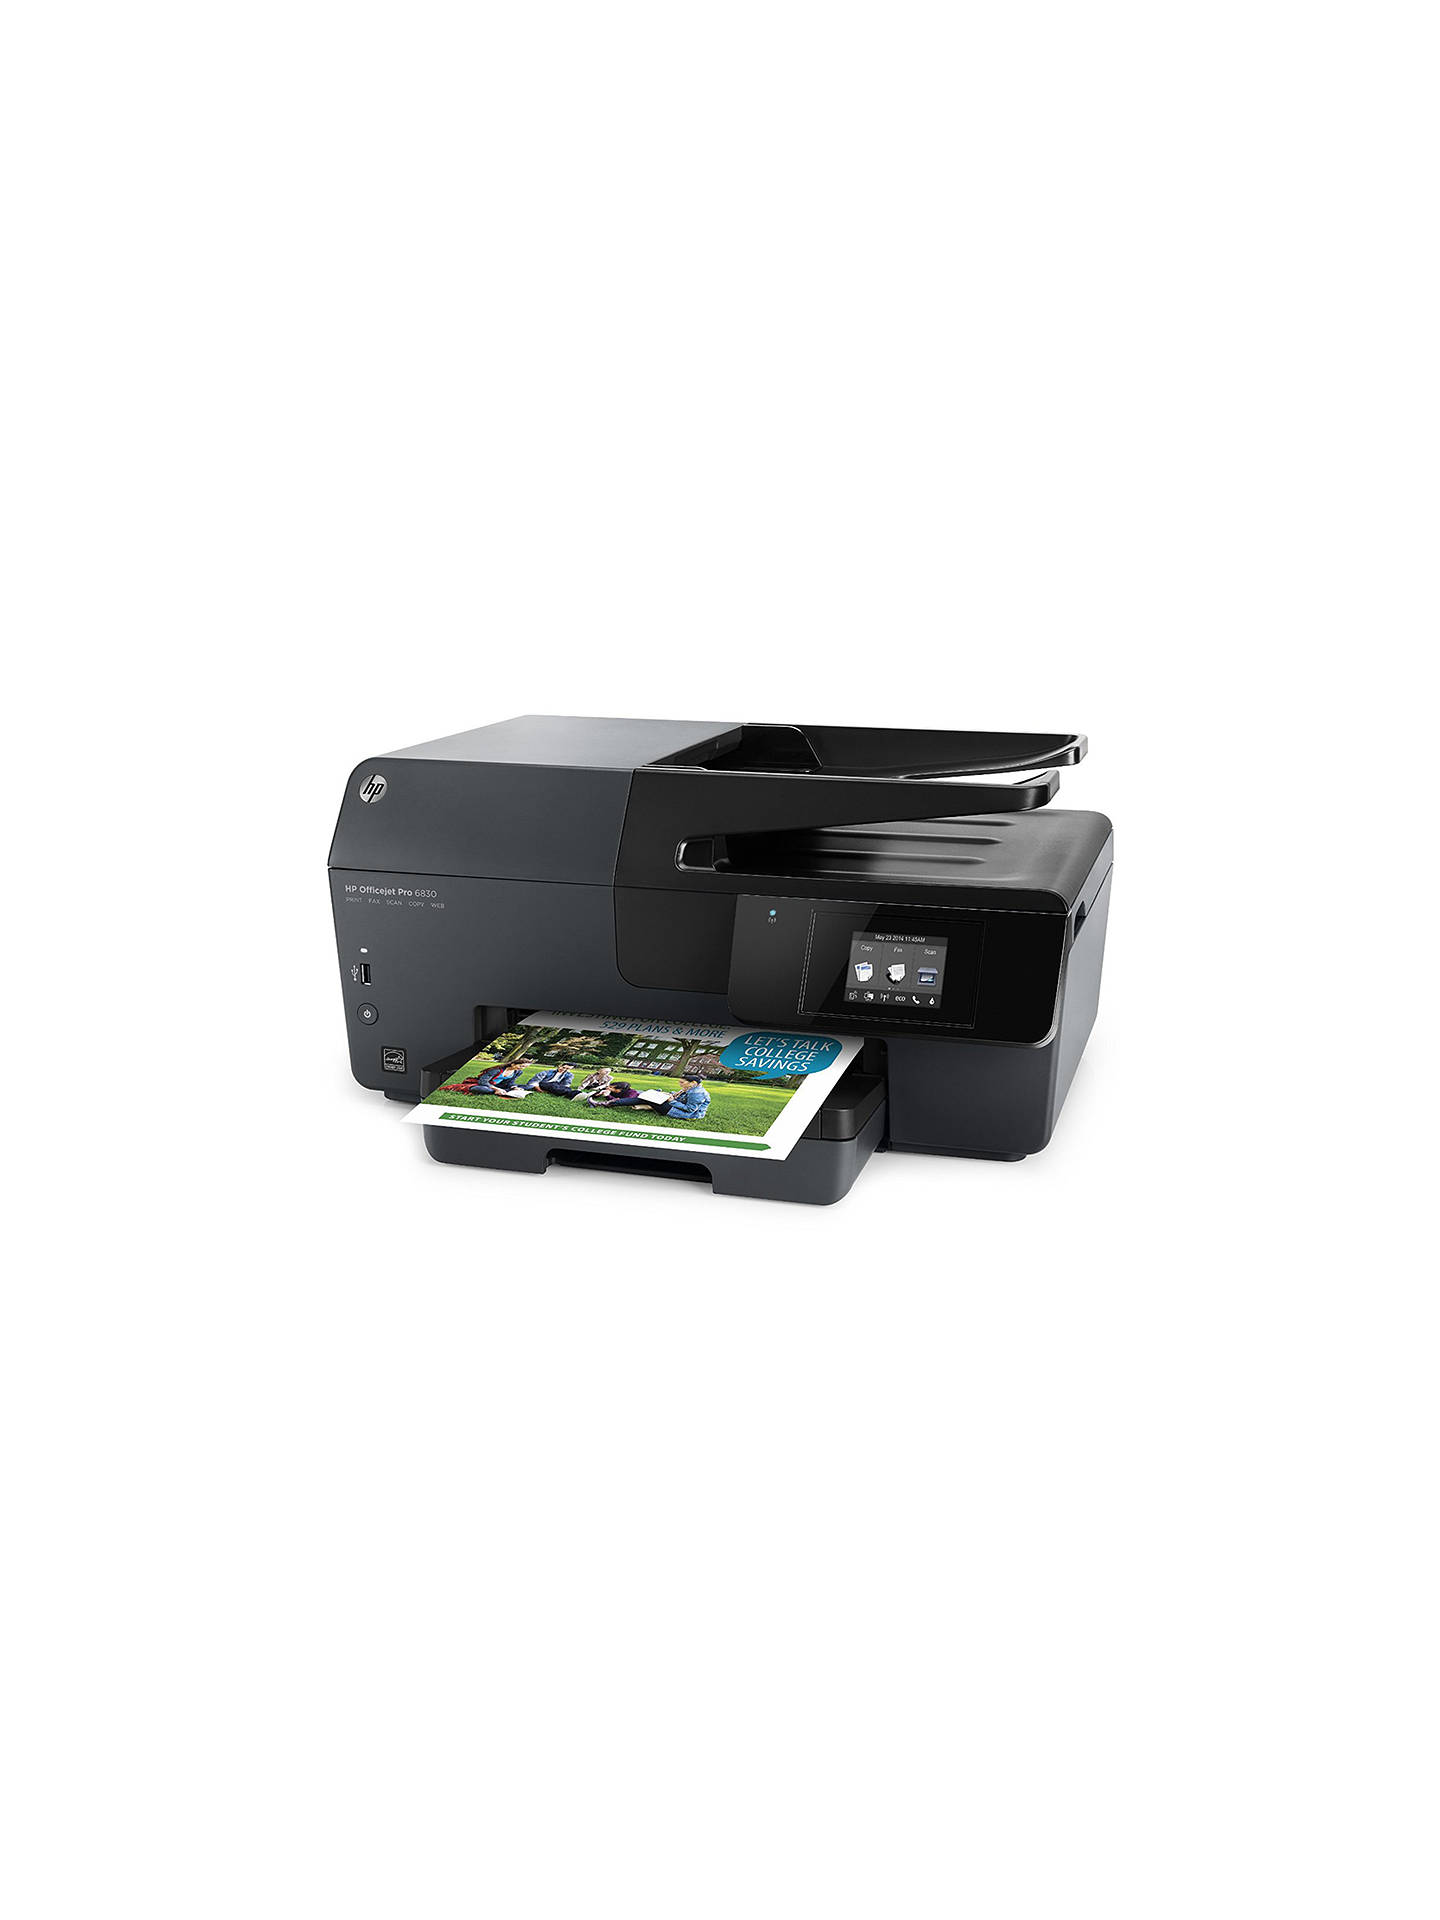 HP Officejet Pro 6830 e-All-in-One Printer & Fax Machine, HP Instant